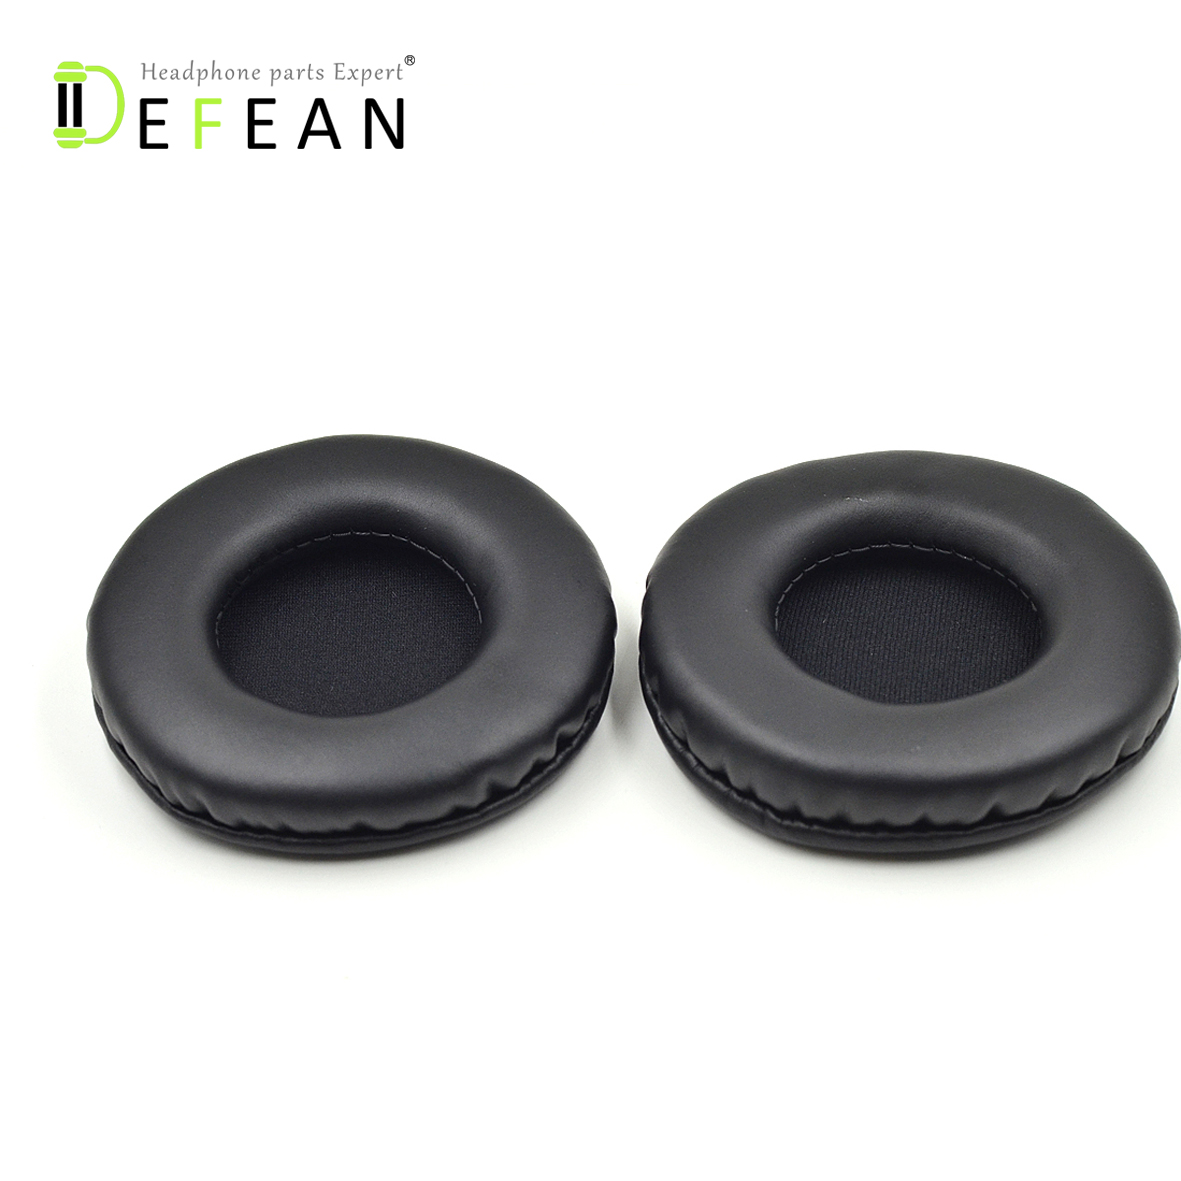 Defean Ear Pad Earpad Cushion Replacement Sony Mdr